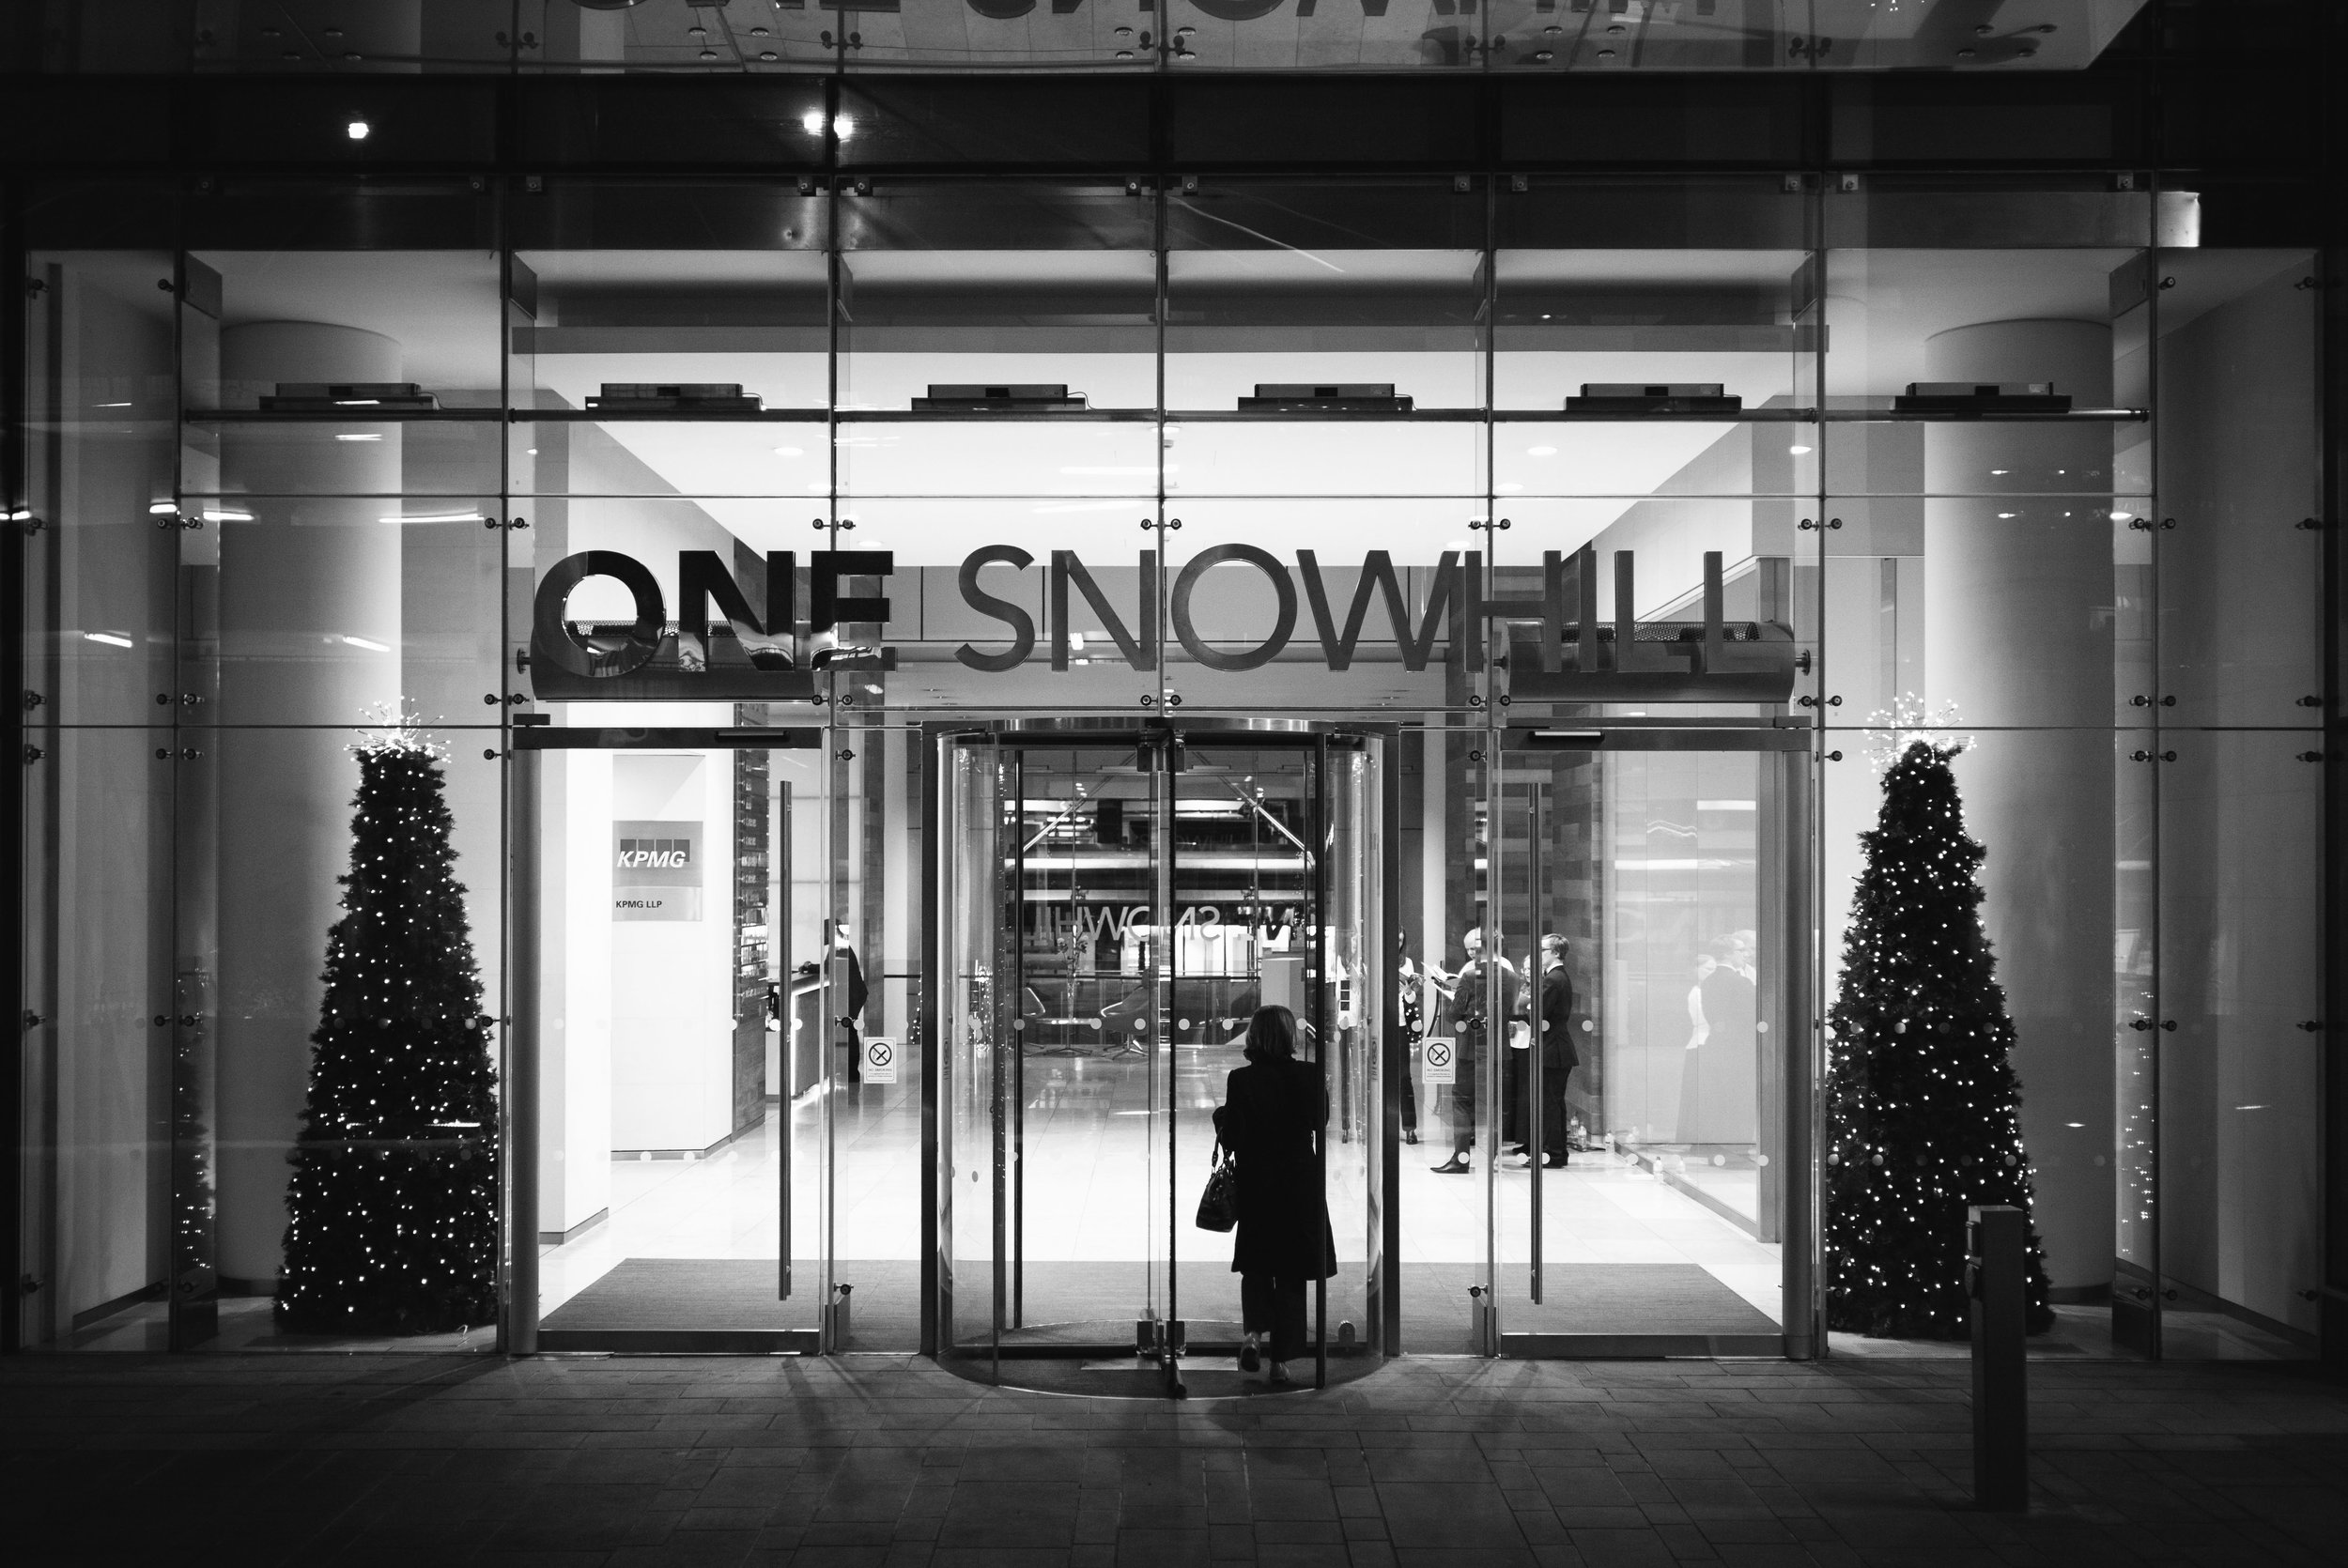 One Snow Hill - Clifford Darby 2016